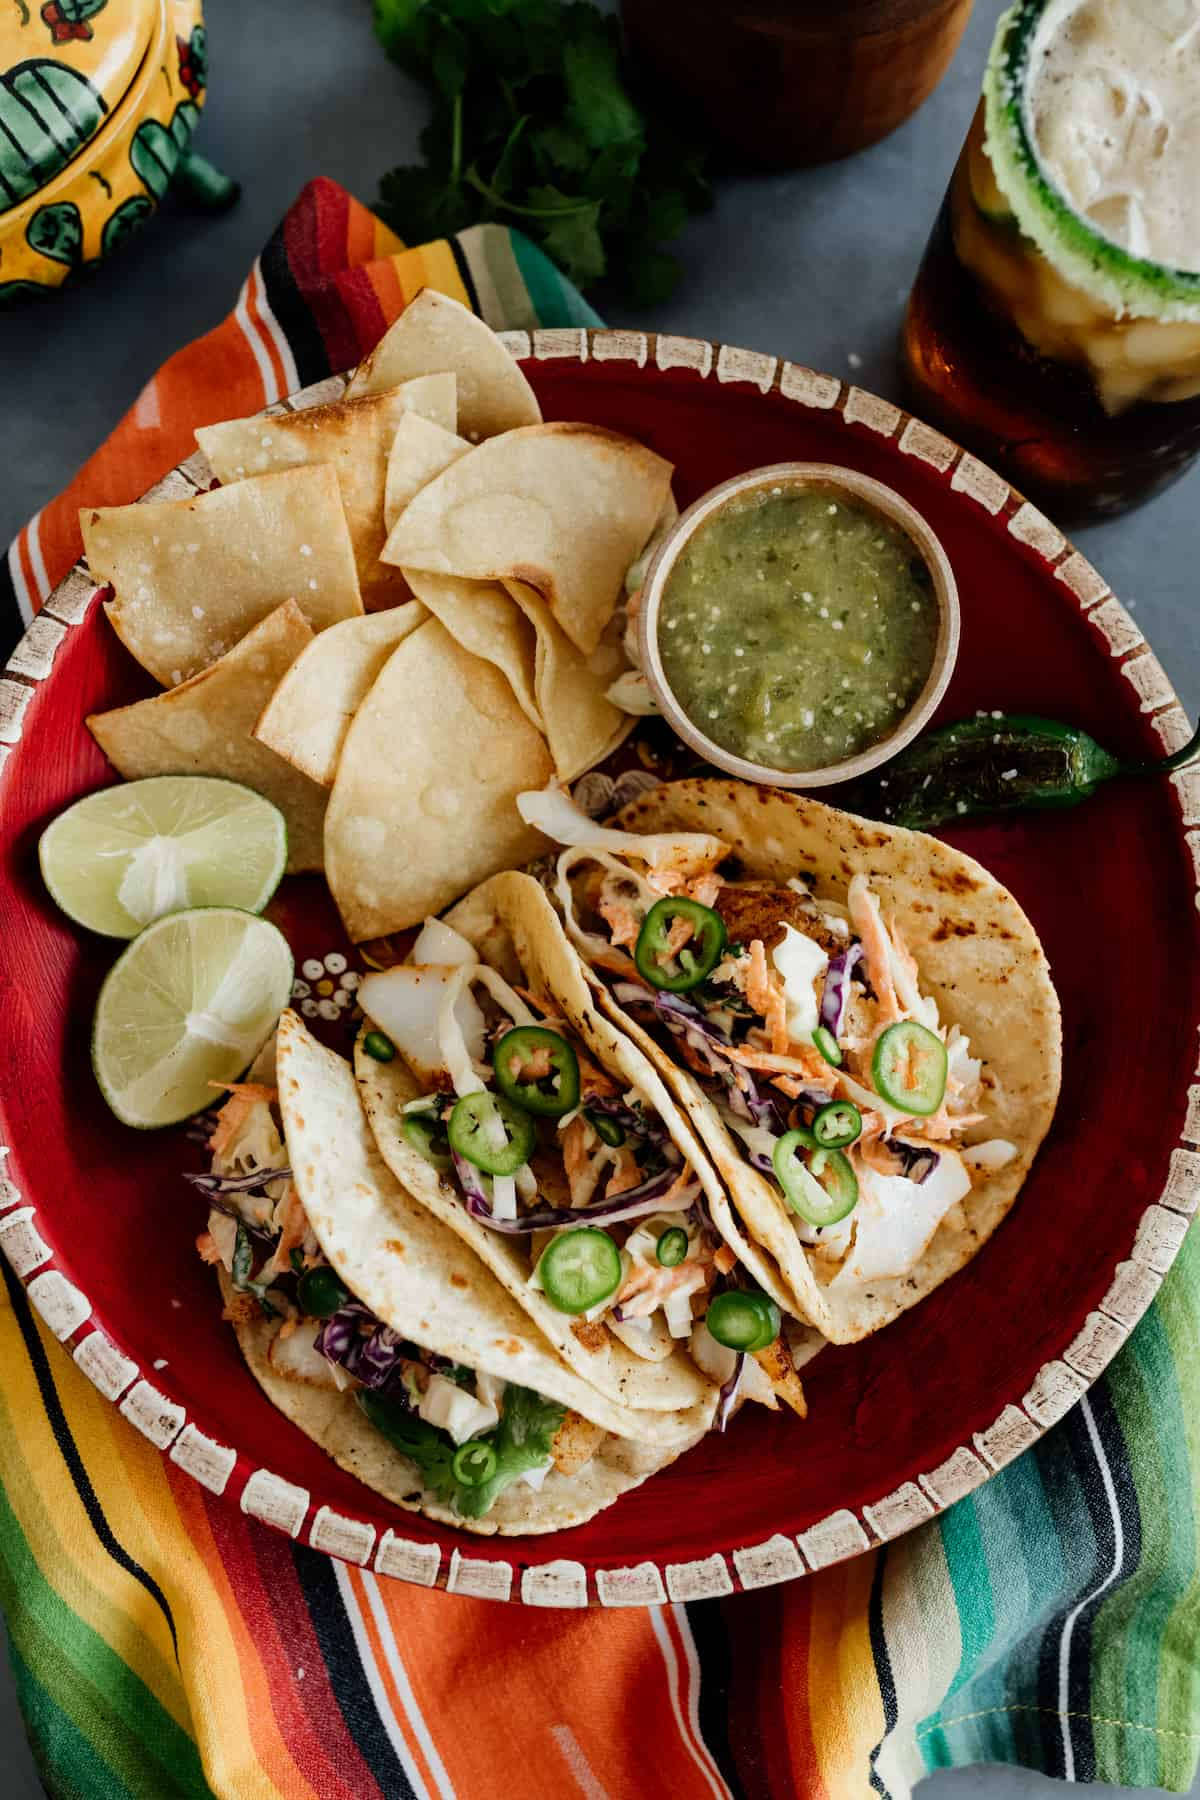 Cod fish tacos with slaw in a red bowl with a side of tortilla chips and salsa verde and a dark beer with a colorful serape napkin